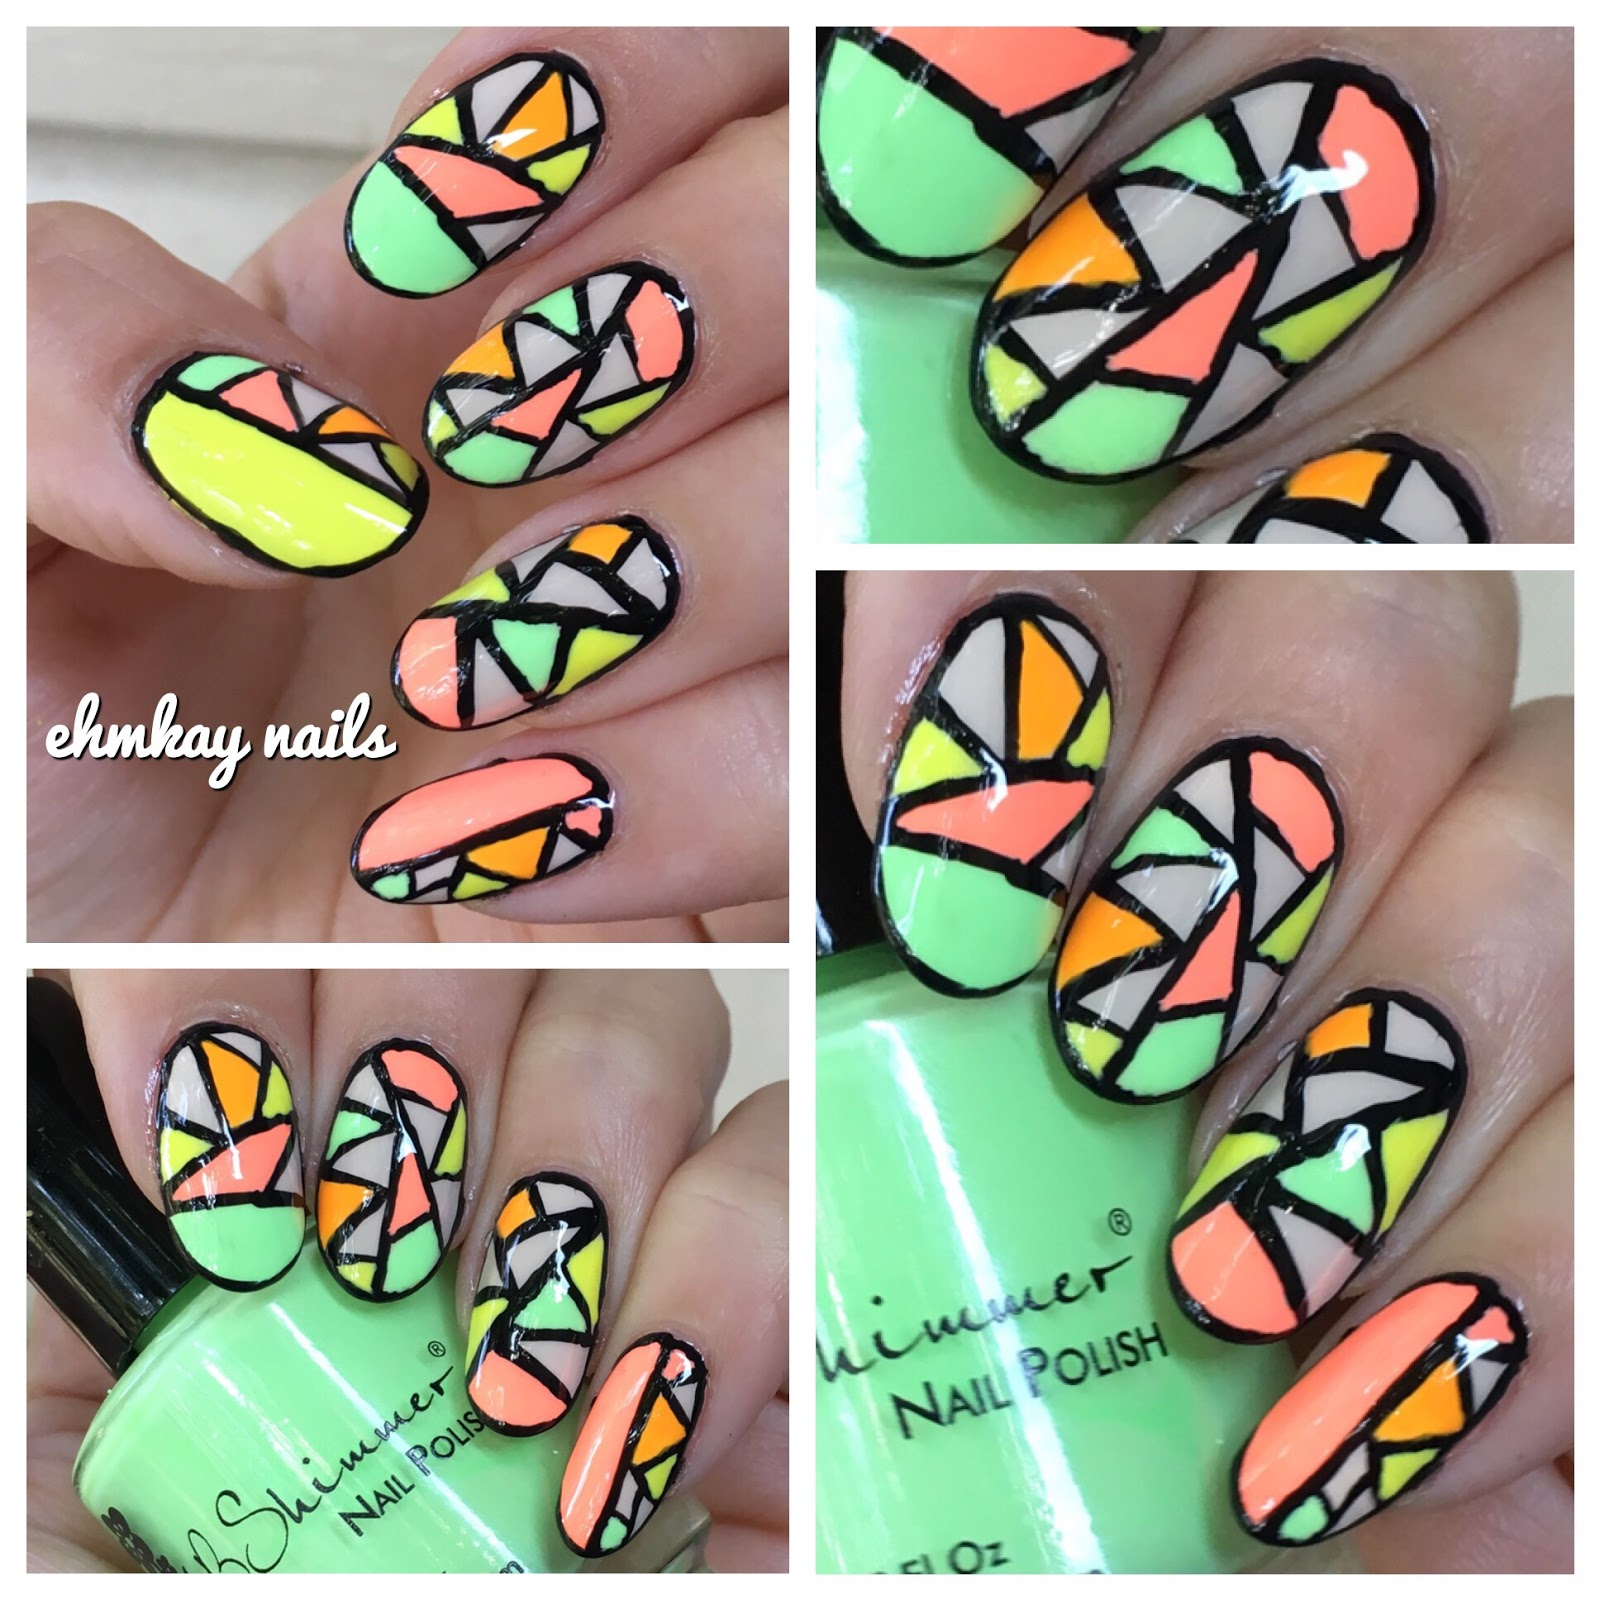 Stained Glass Nail Art: Ehmkay Nails: Neon Stained Glass Nail Art Featuring KB Shimmer